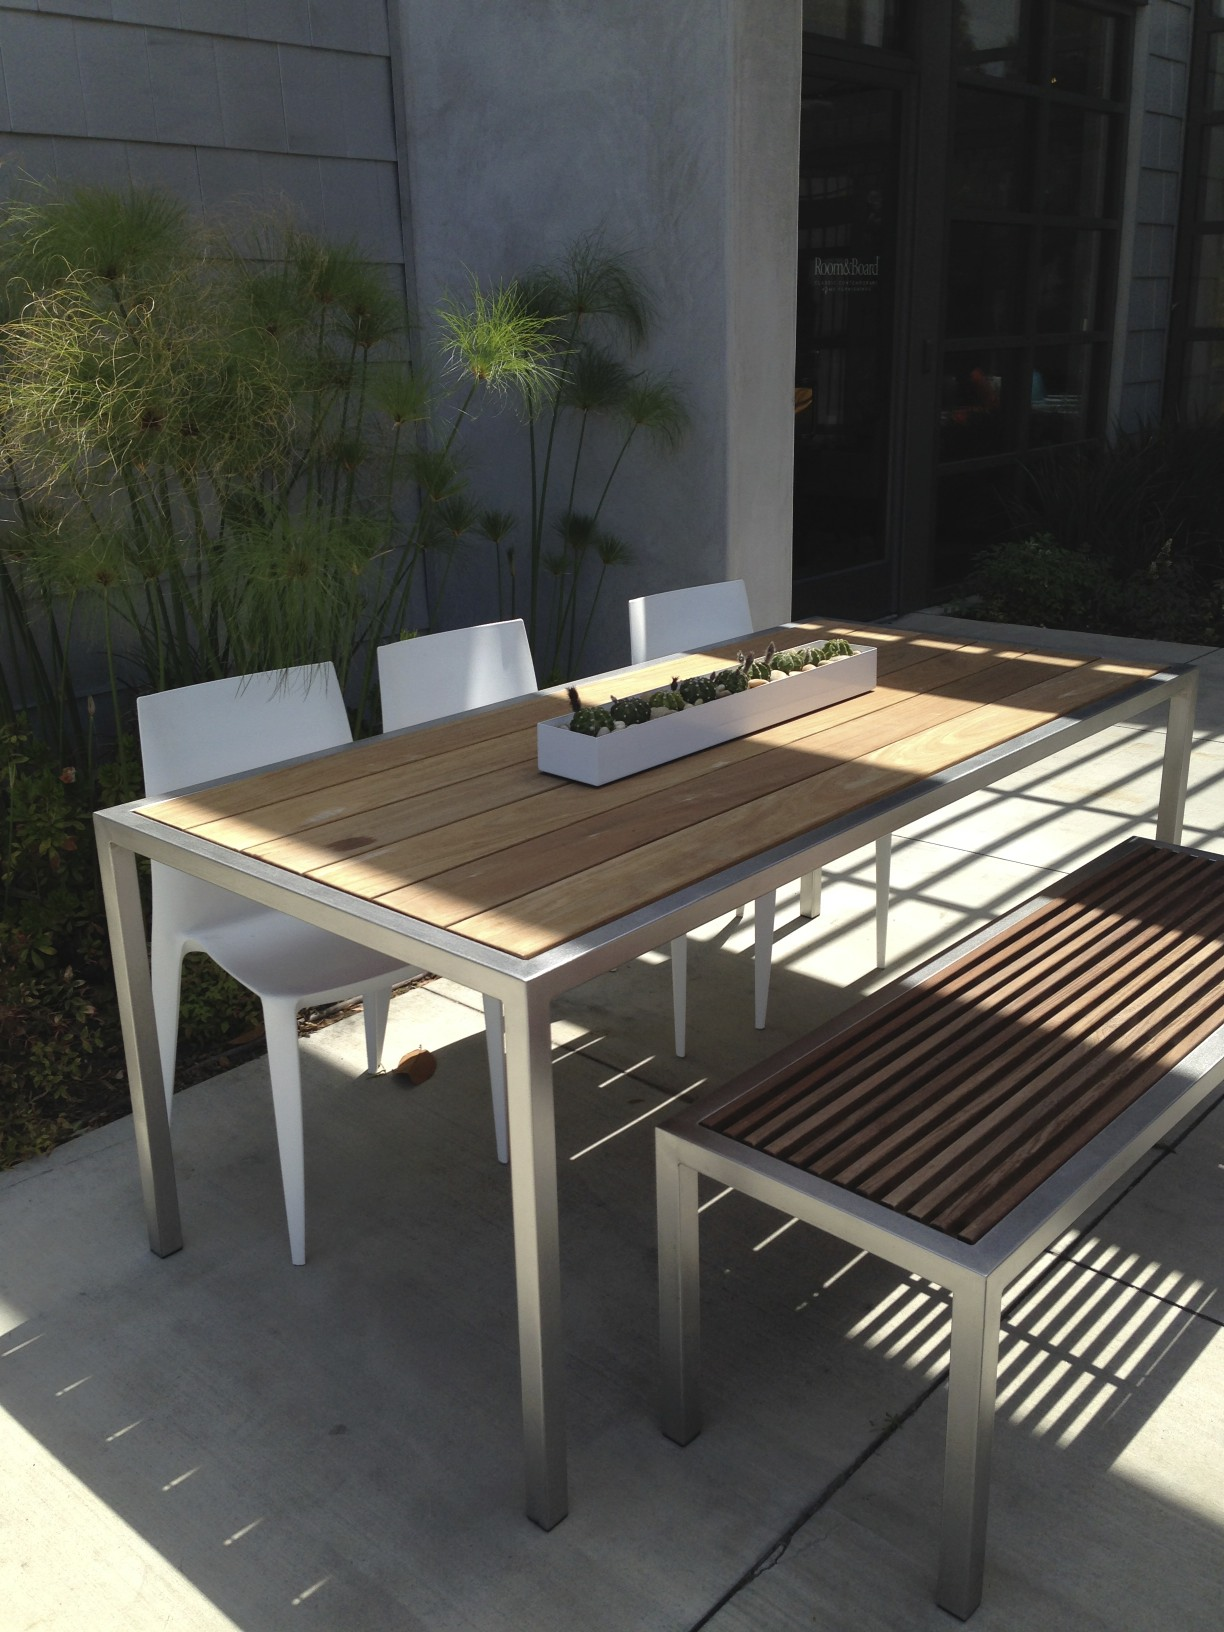 rboutdoordining - Room & Board Summer Outdoor Collection OC Mom Blog OC Mom Blog